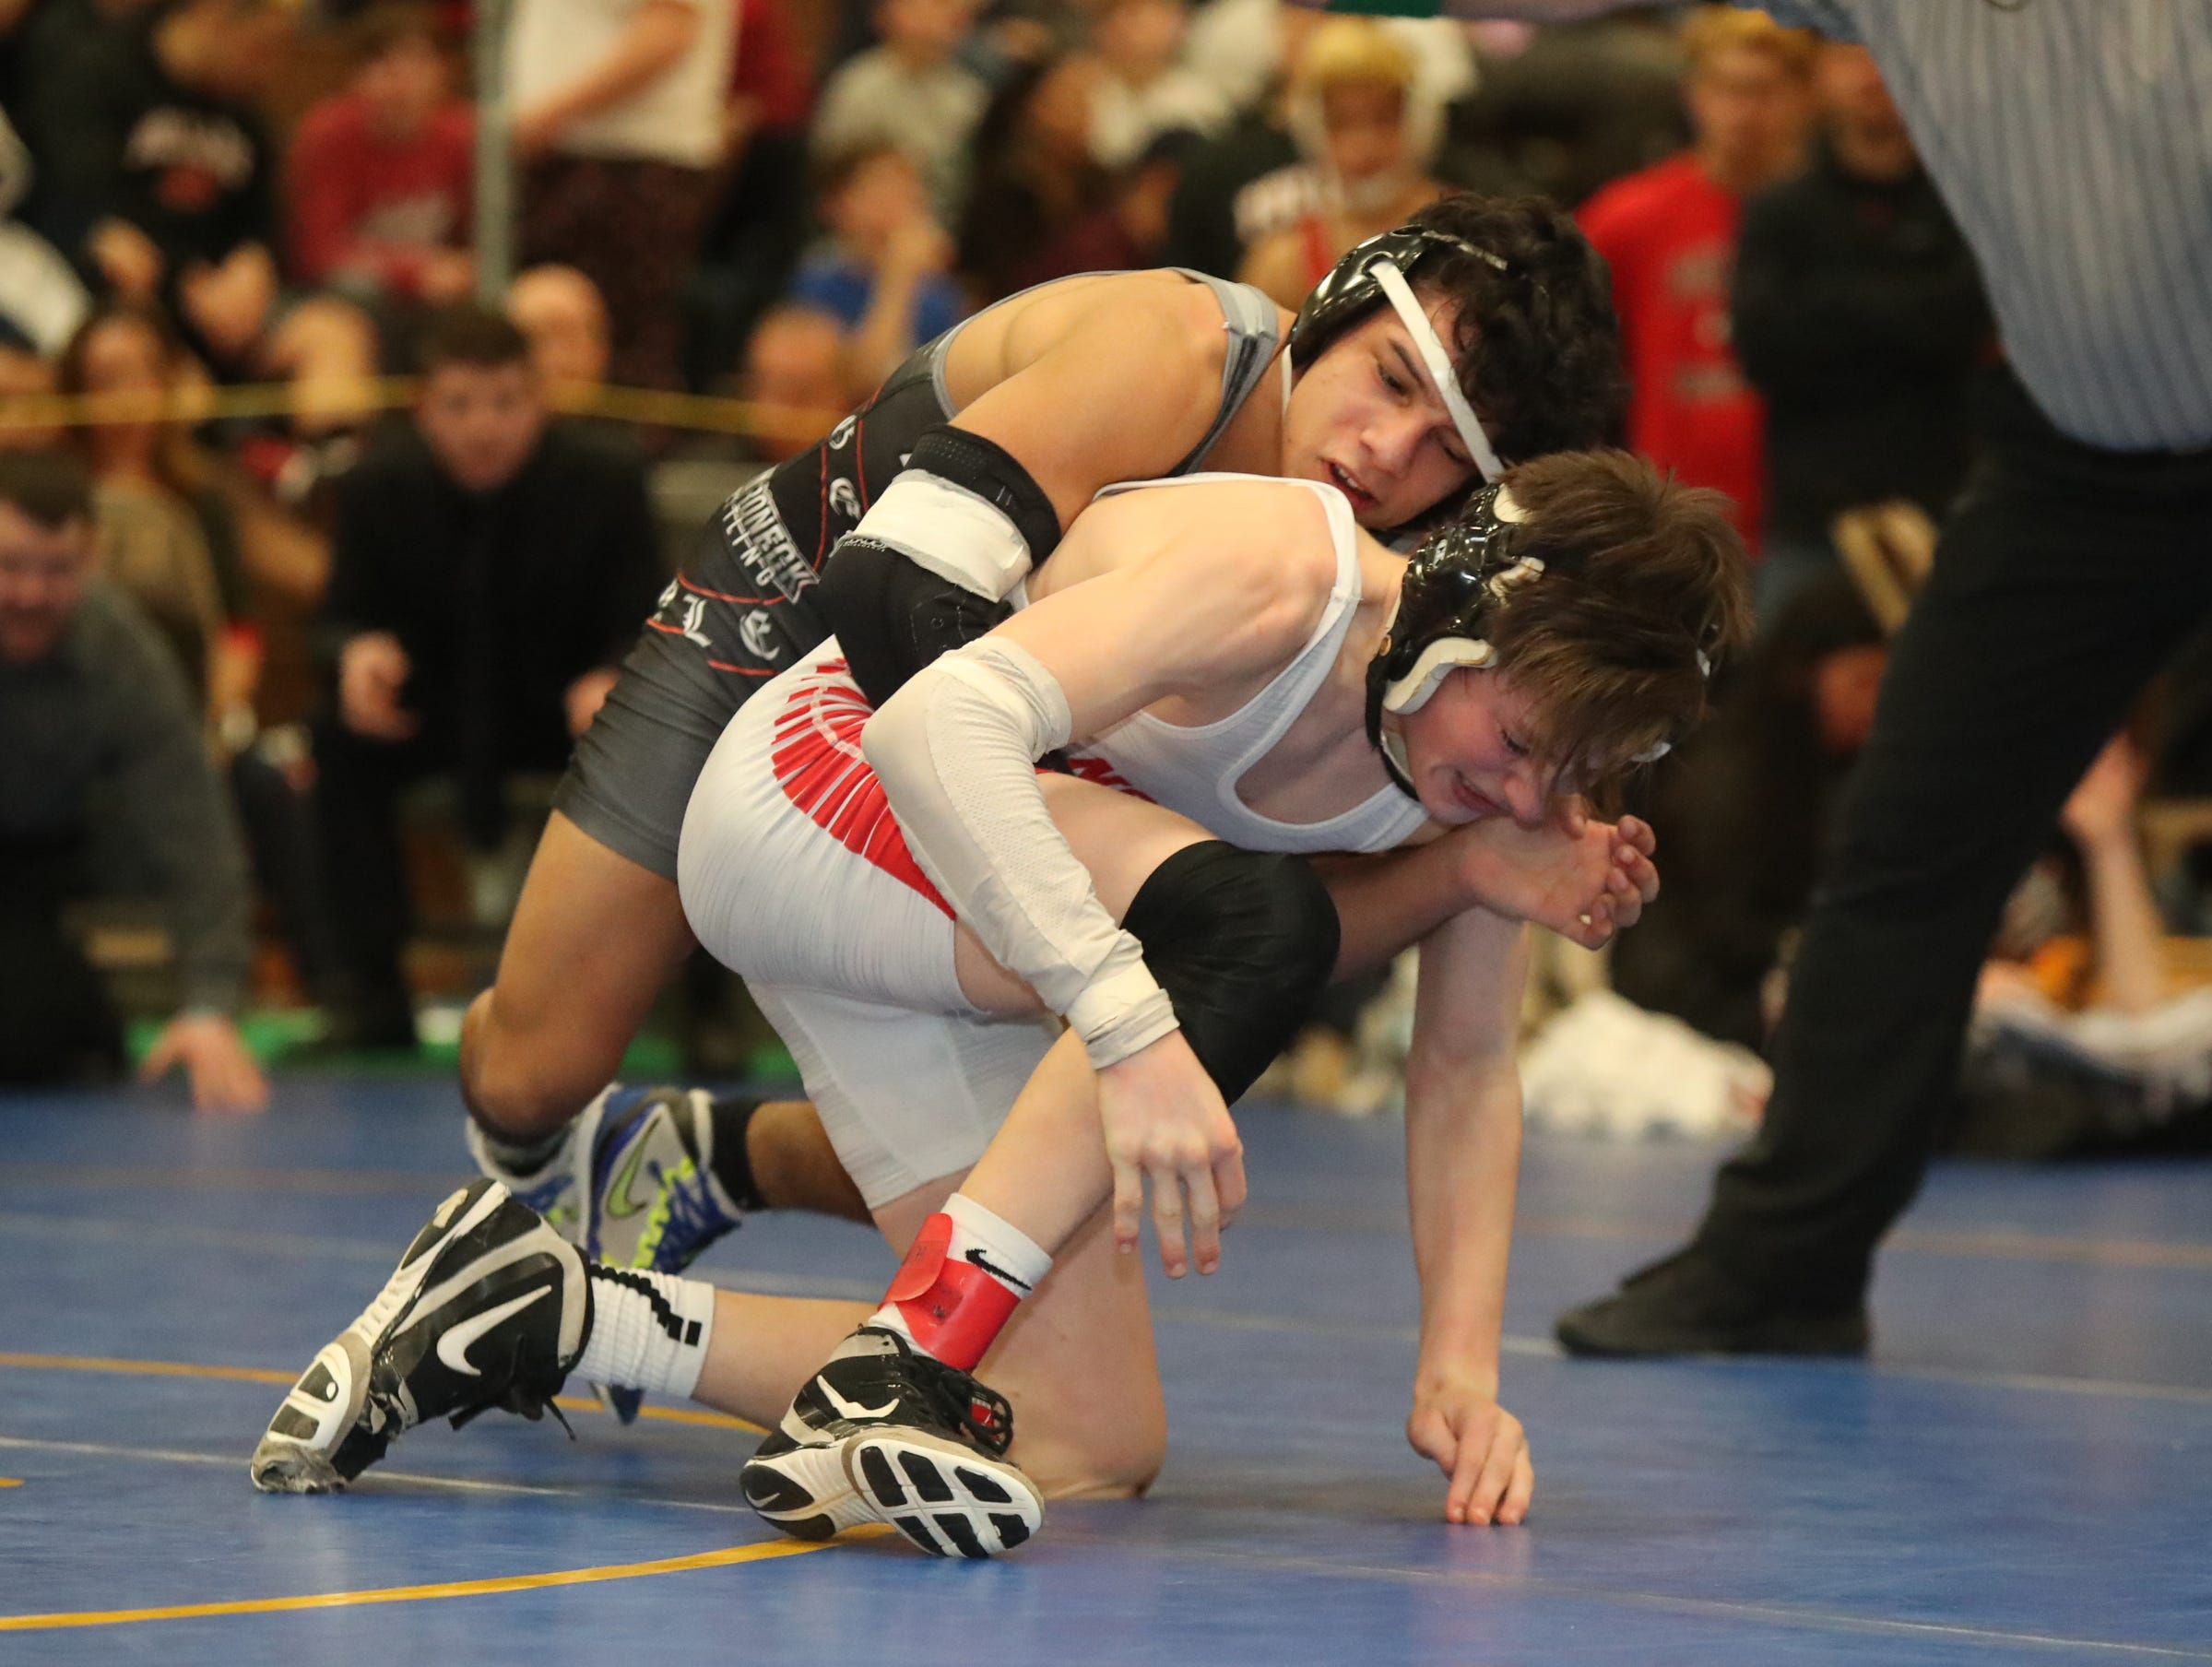 Mamaroneck's Joey Rodas defeats Reece Breyer of North Rockland in the 113-pound match of the division I wrestling finals at Clarkstown South High School on Sunday, February 10, 2019.